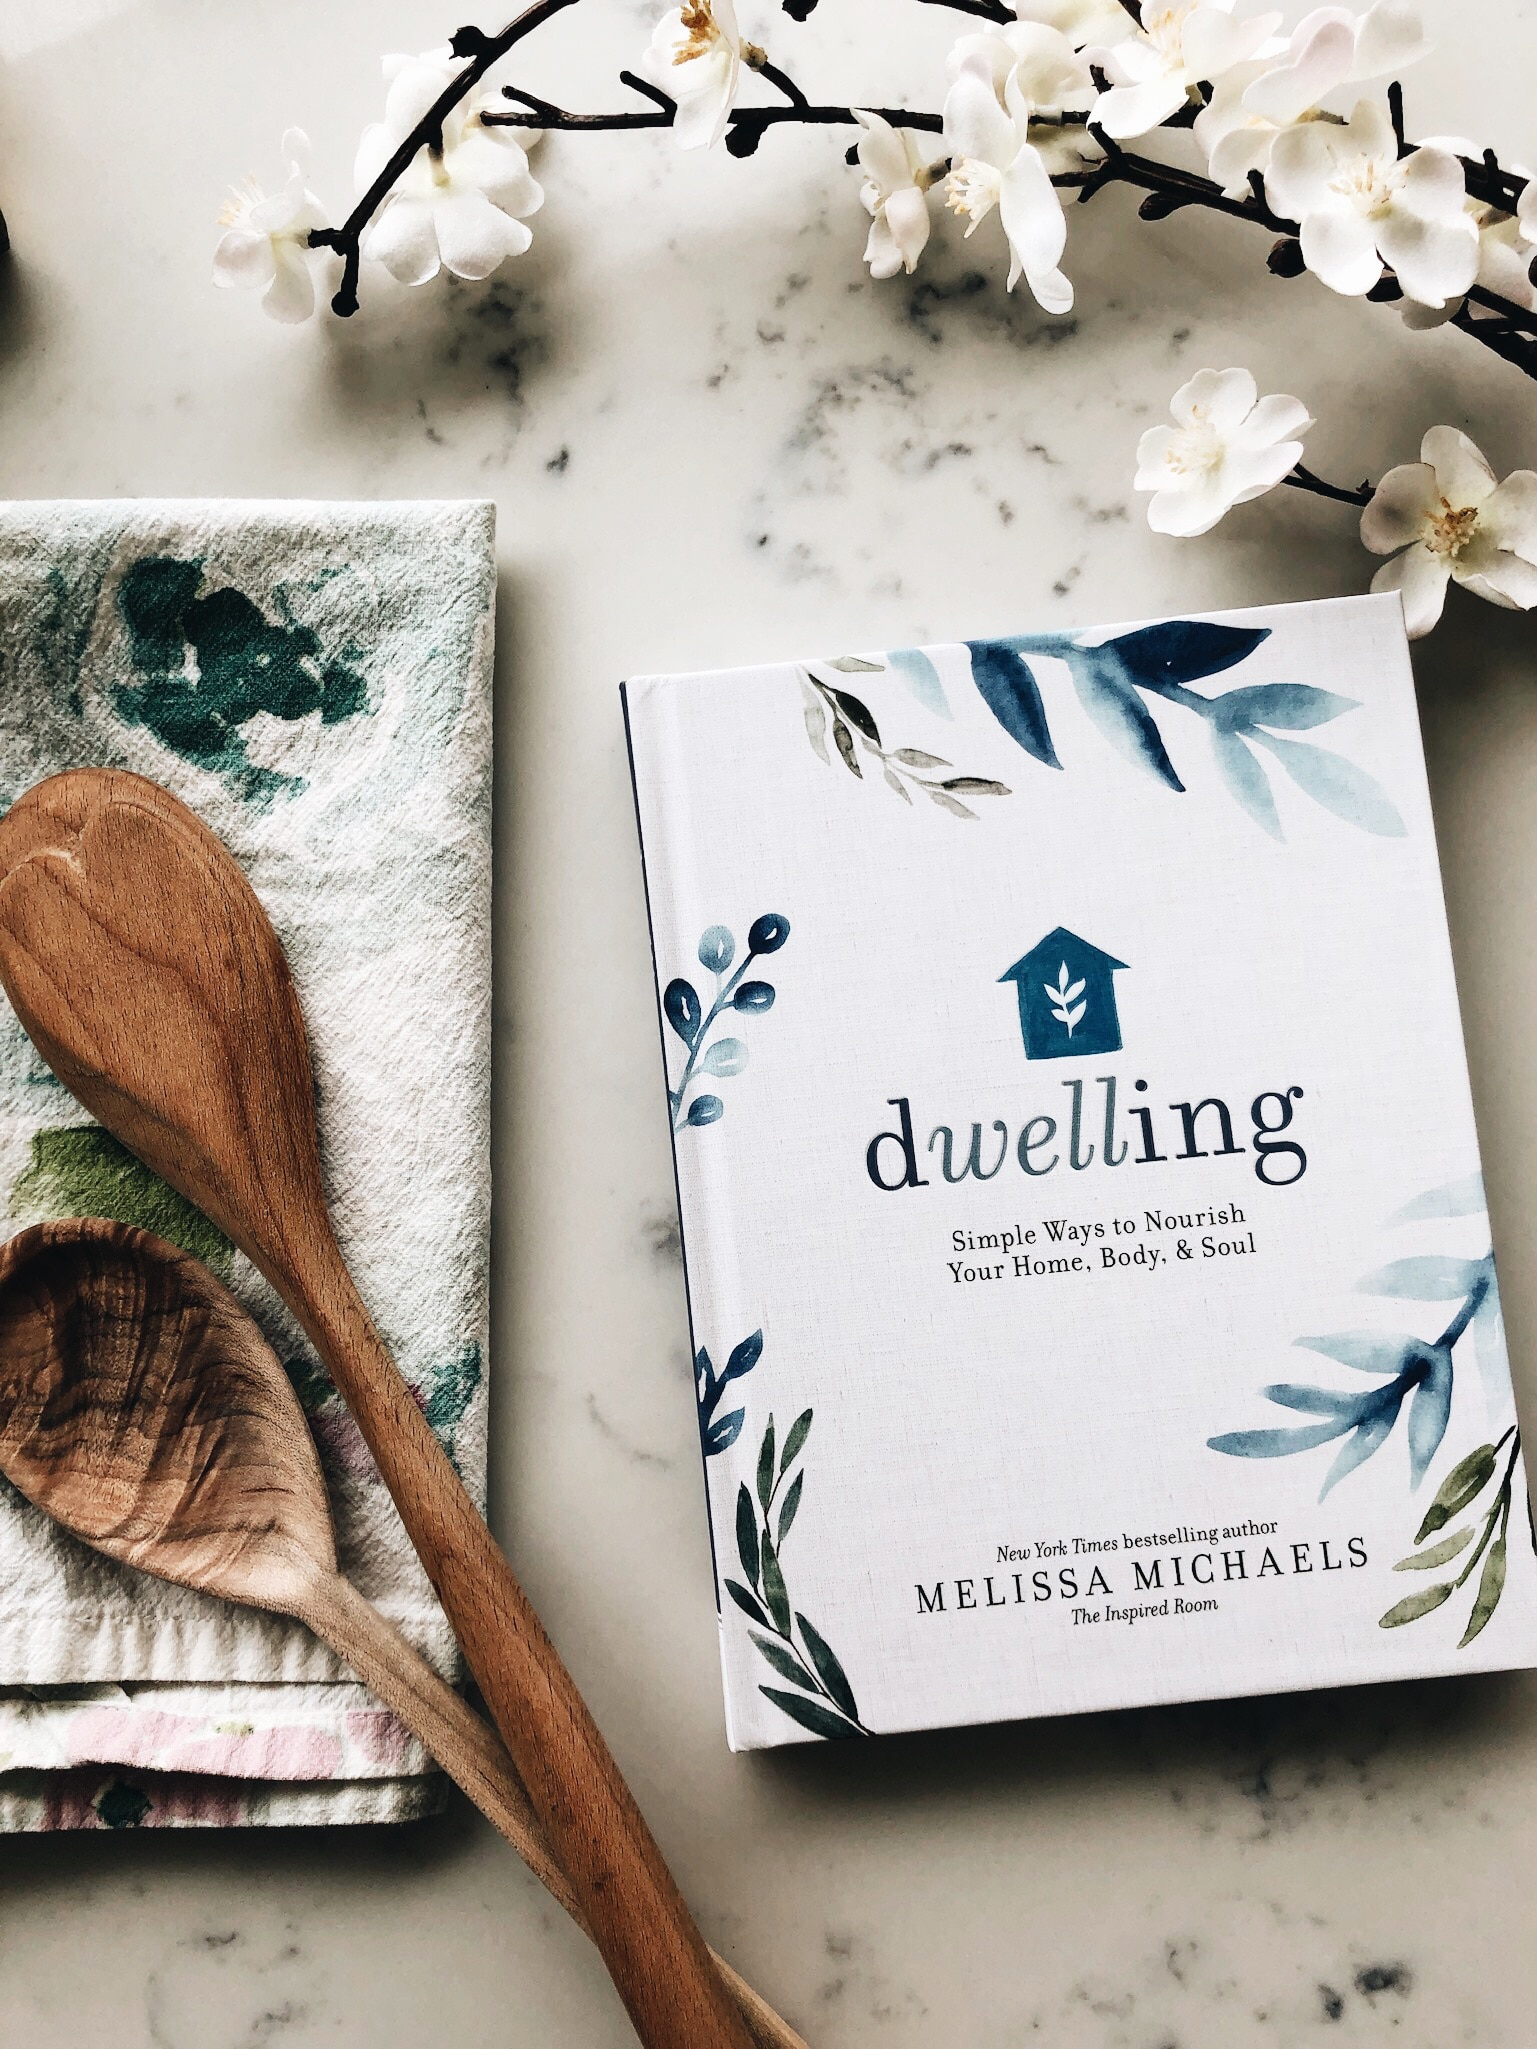 Why Dwelling is the Most Important Book I've Ever Written